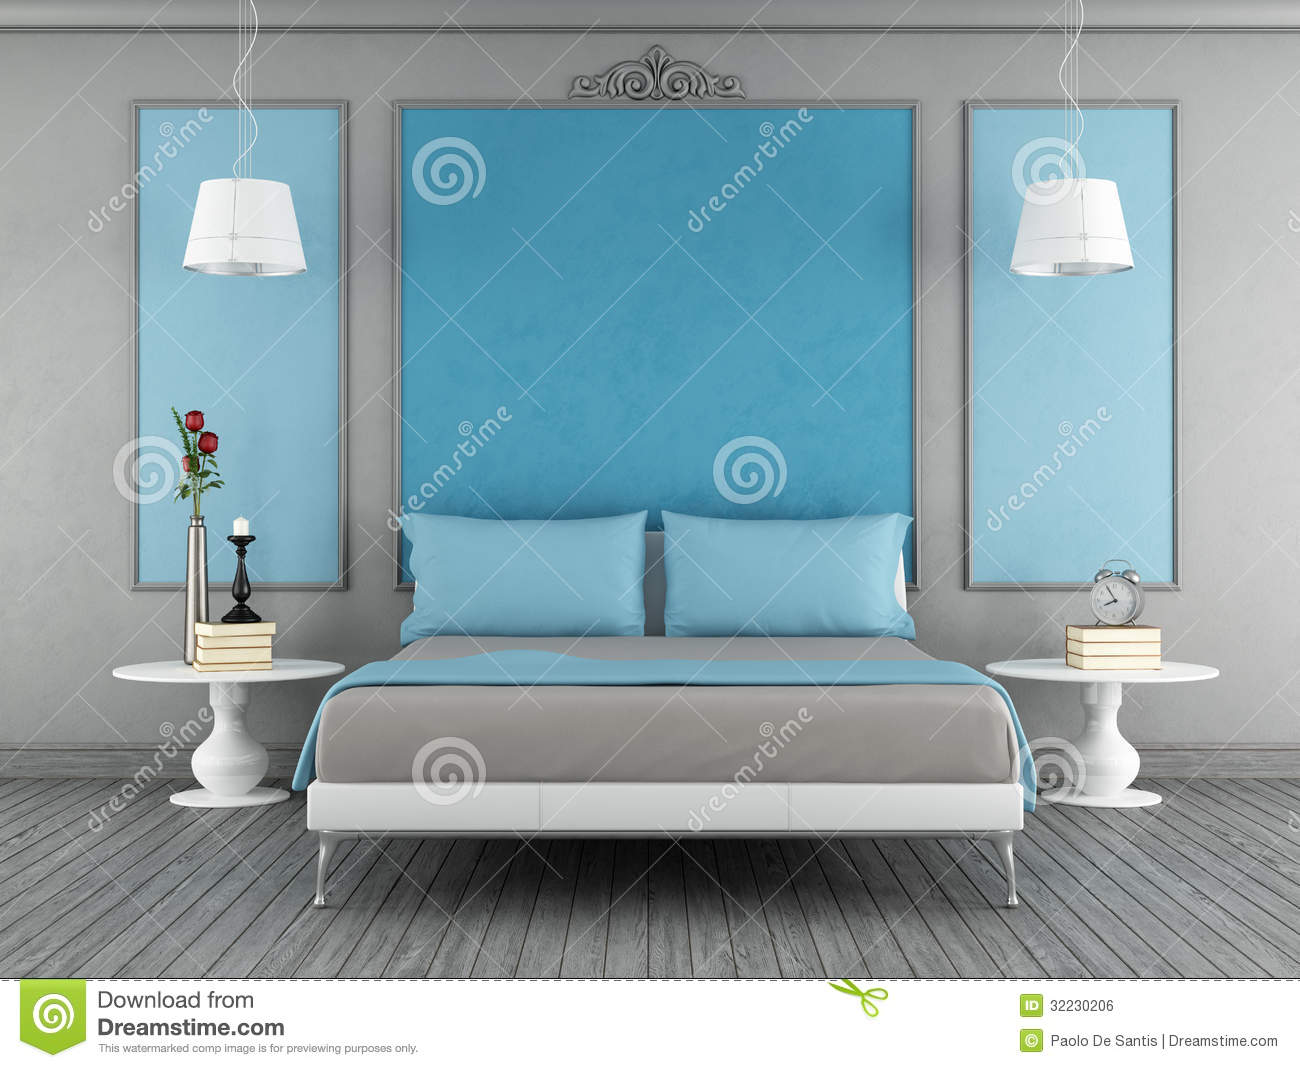 Blue and gray bedroom stock illustration. Illustration of live ...